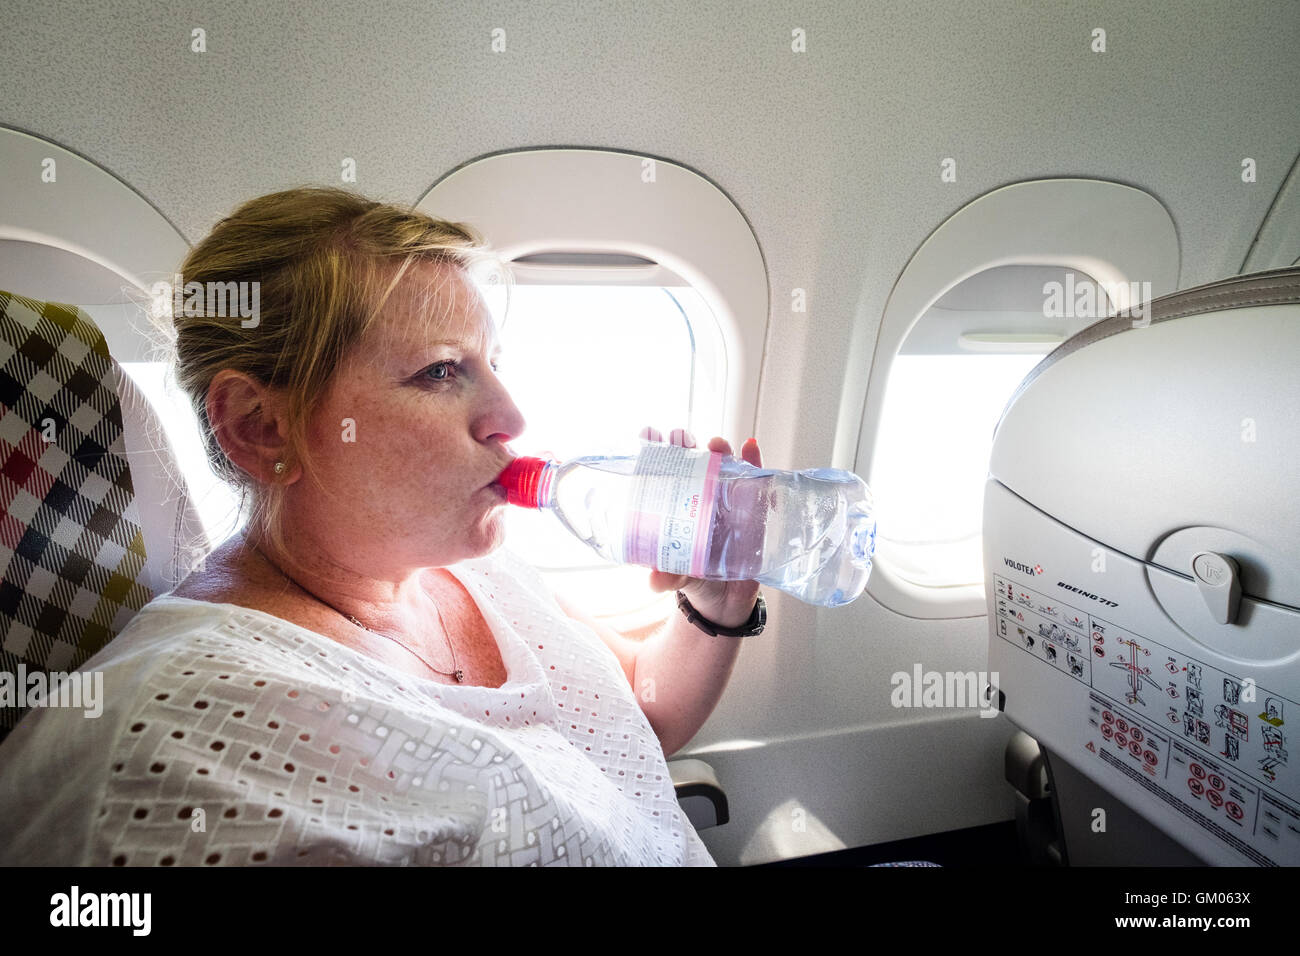 A woman drinking a bottle of water to stay hydrated during a flight on a plane - Stock Image